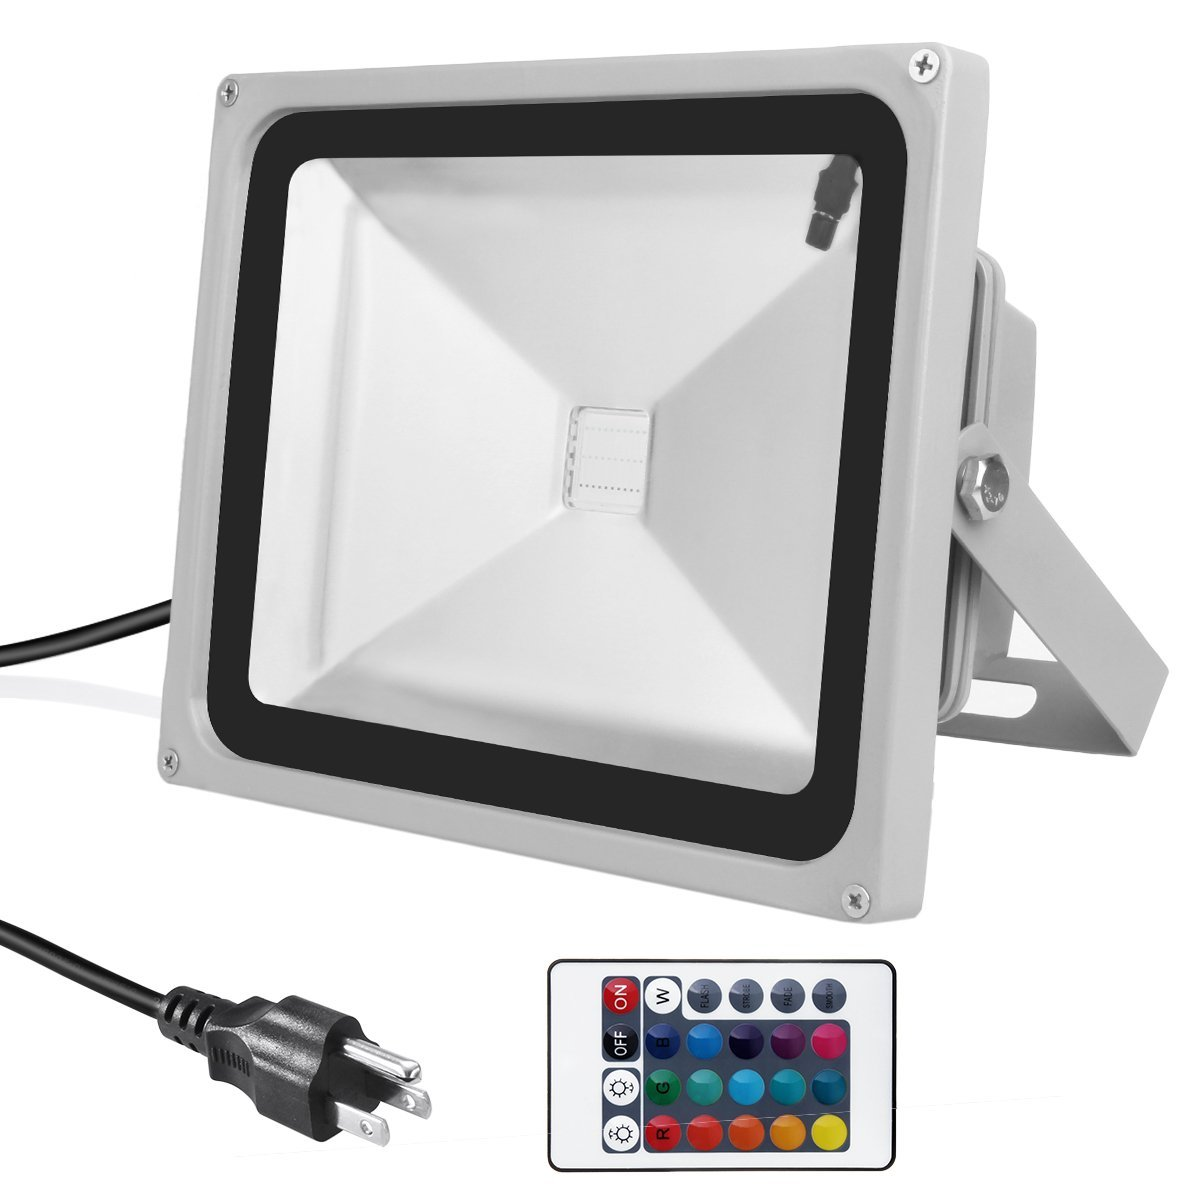 Warmoon Outdoor LED Flood Light, 30W RGB Color Changing Waterproof Security Lights with 3-Prong US Plug & Remote Control